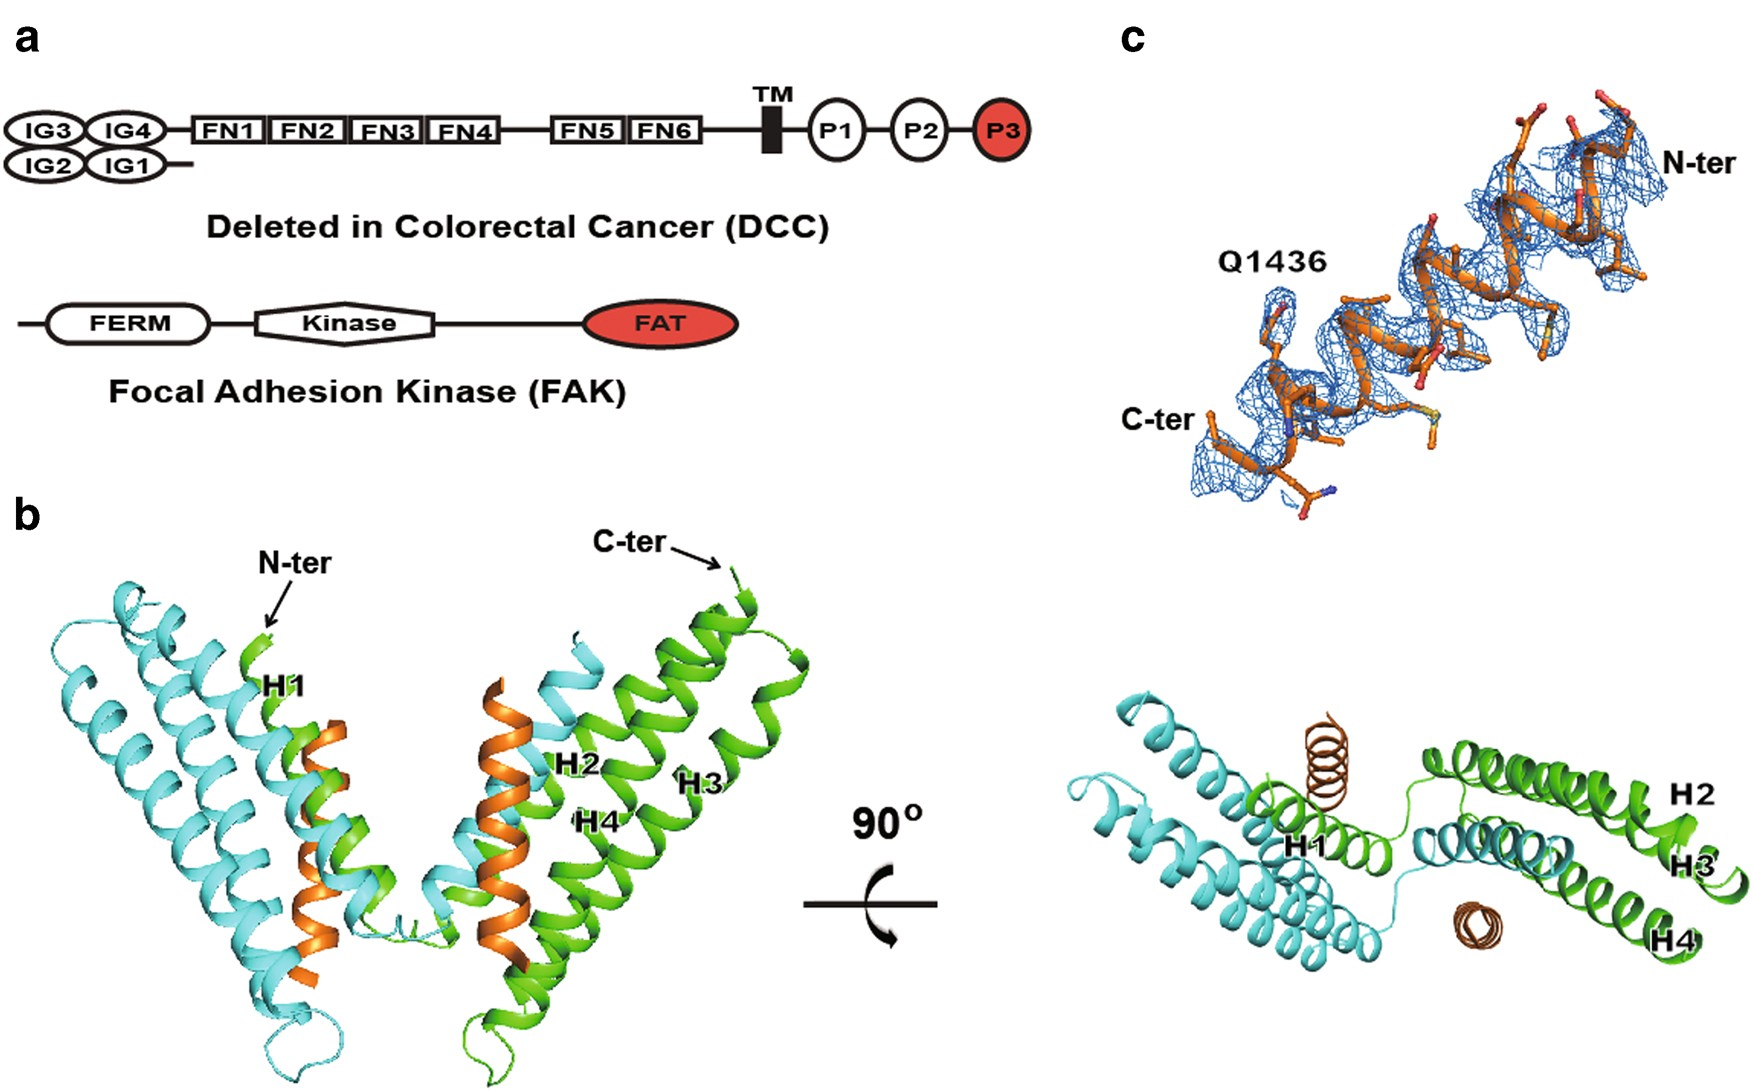 The binding of DCC-P3 motif and FAK-FAT domain mediates the initial